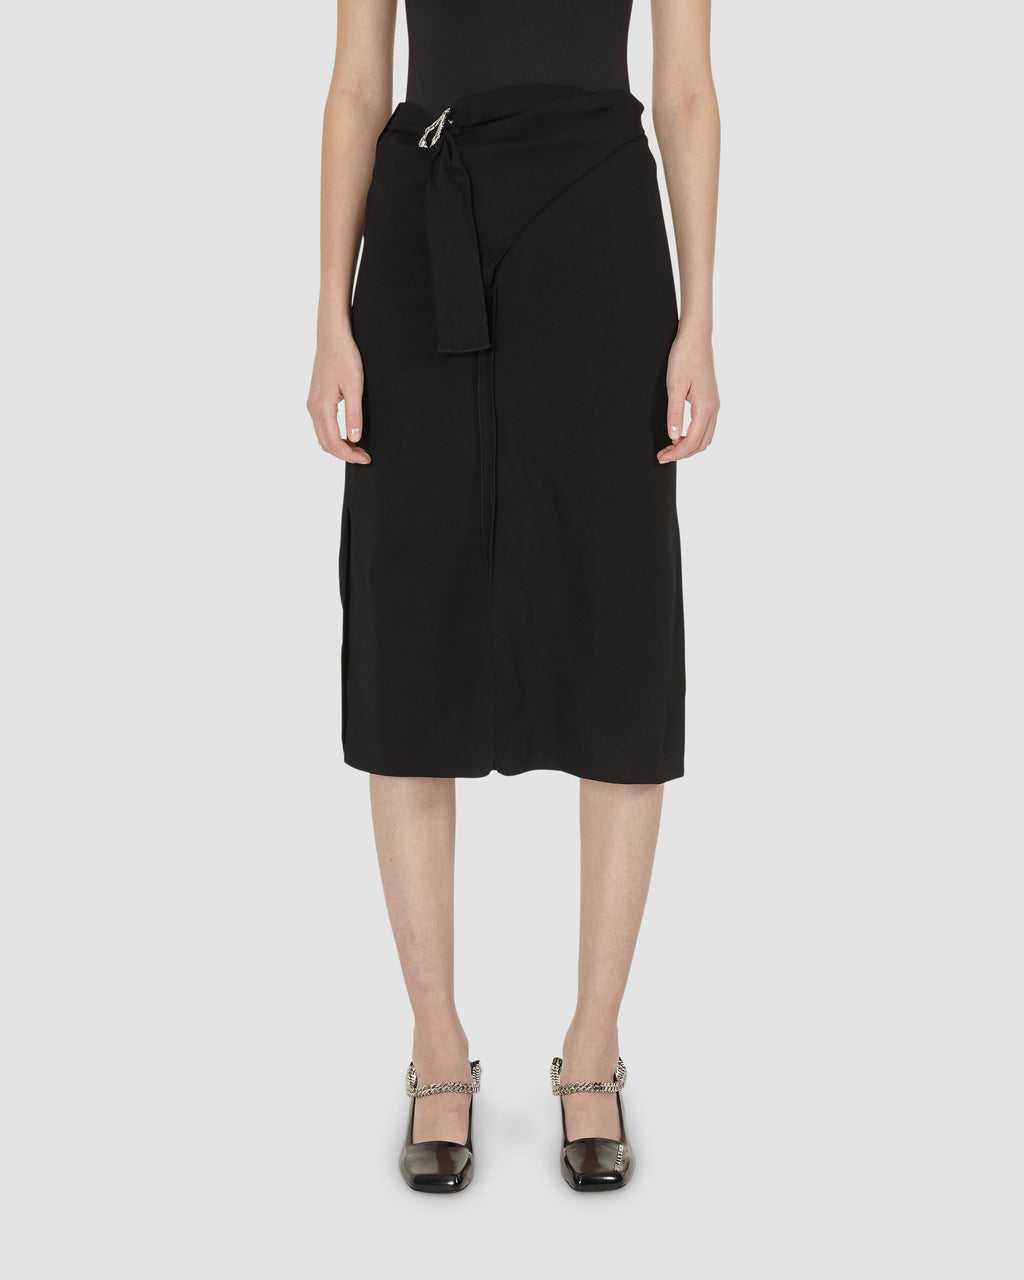 1017 ALYX 9SM | SASHA WRAP SKIRT | Skirt | BLACK, Google Shopping, S20, S20 Drop II, Skirts, Woman, WOMEN